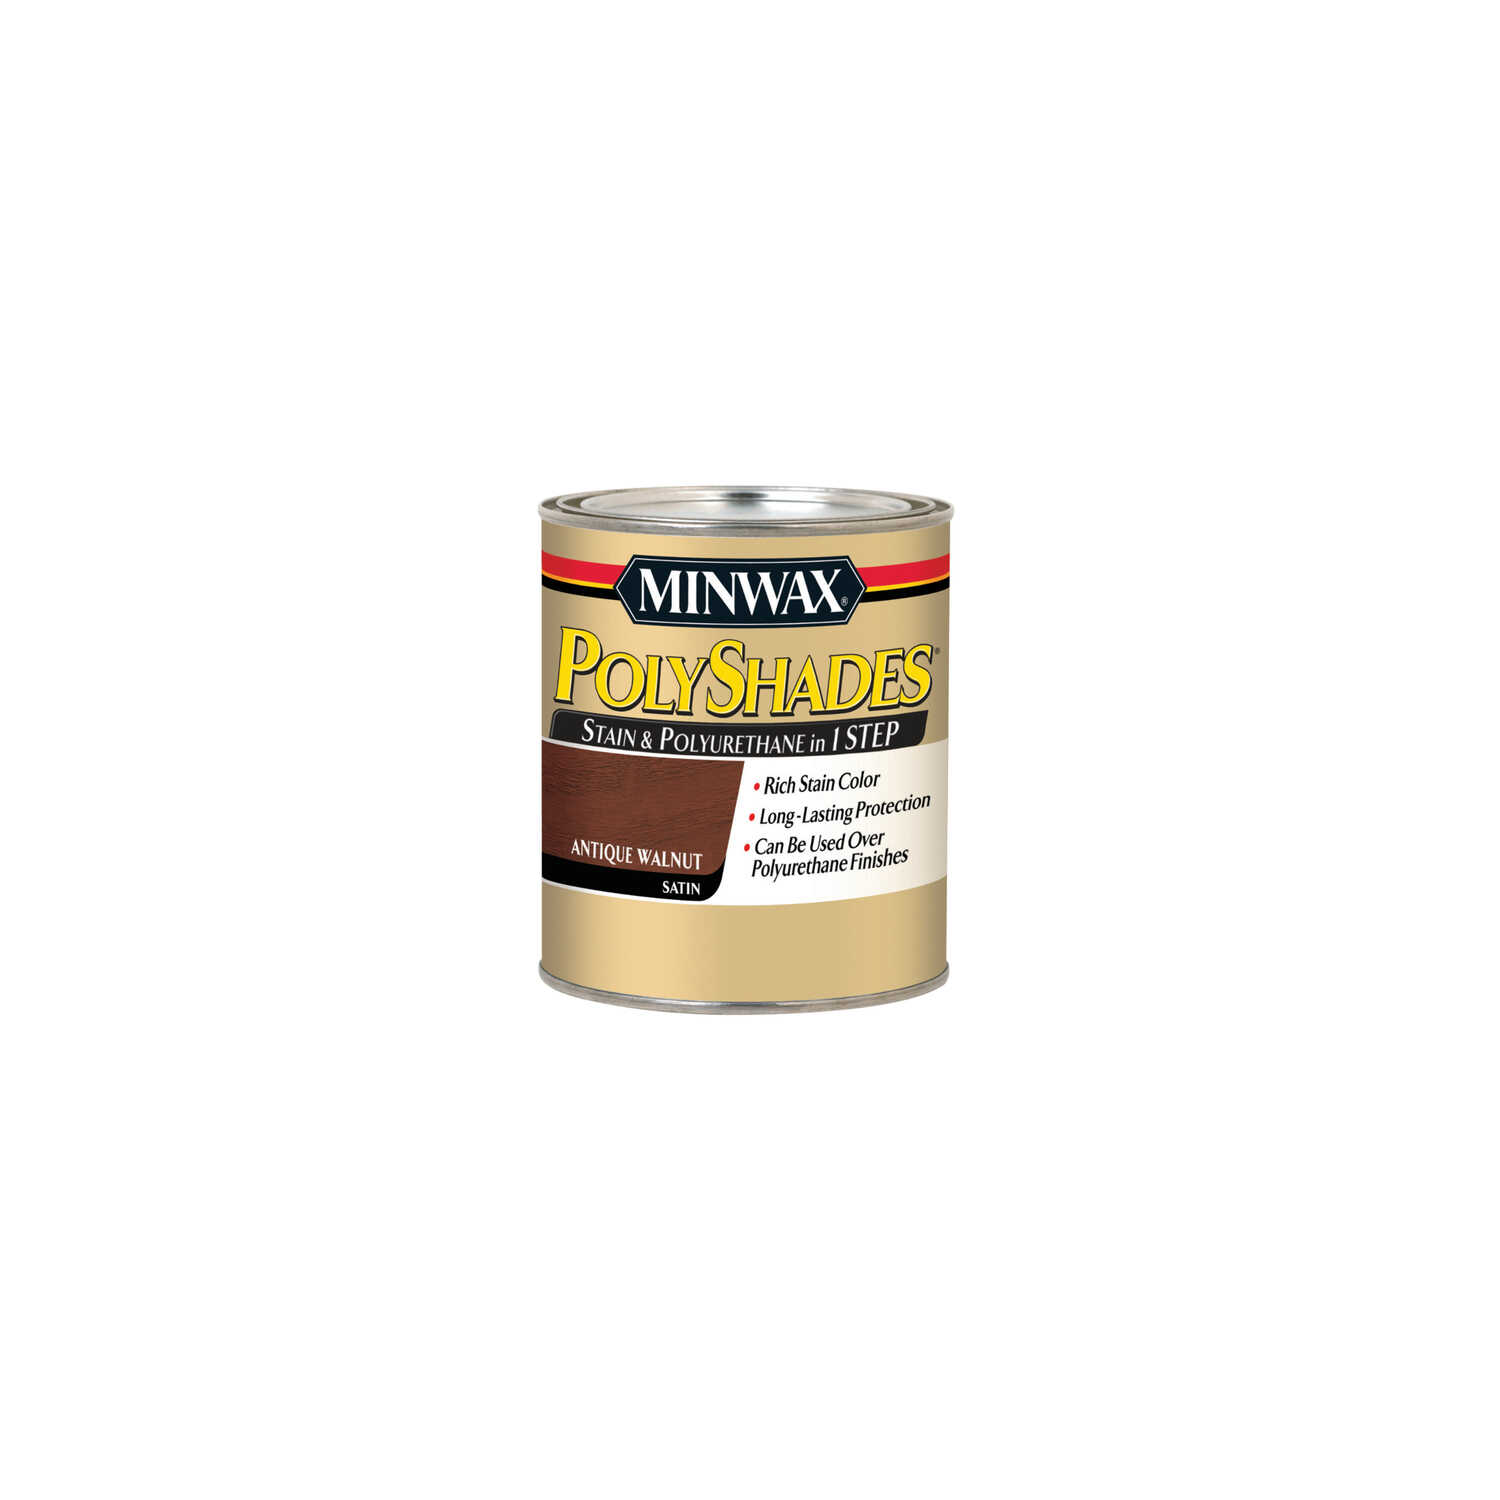 Minwax  PolyShades  Semi-Transparent  Satin  Antique Walnut  Oil-Based  Stain  0.5 pt.